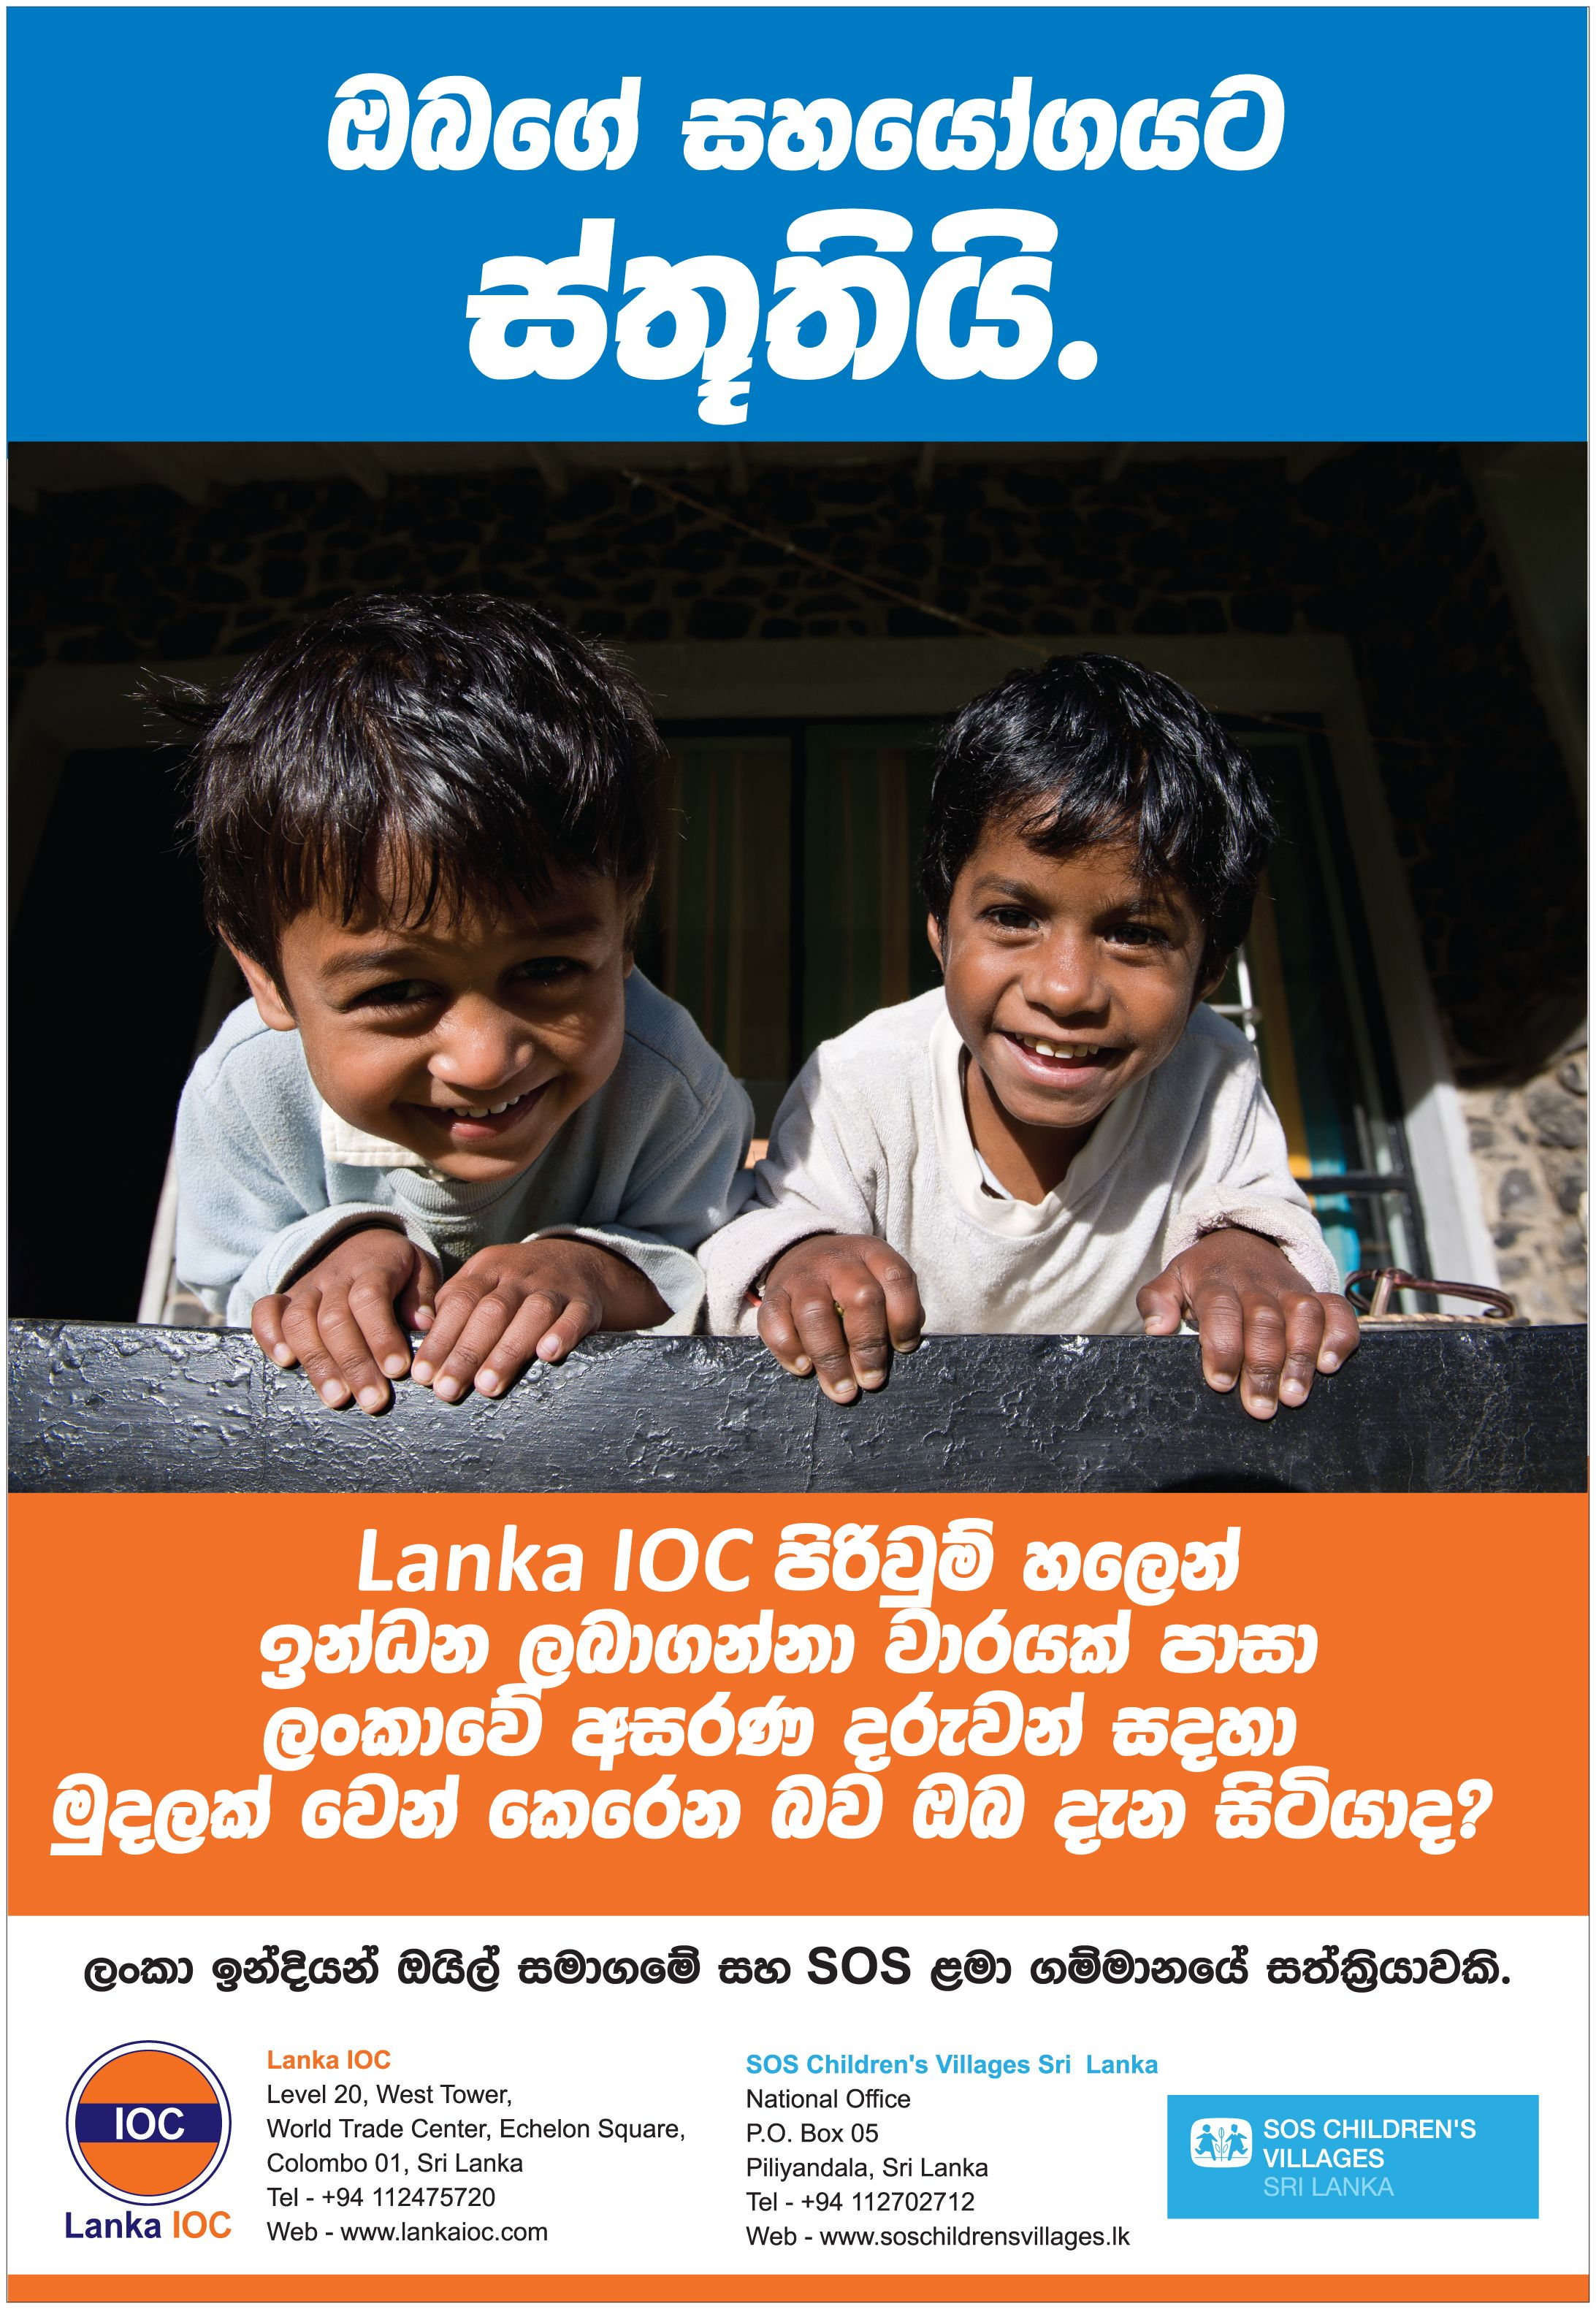 If You go by Mount Lavinia or Kandy filling stations, this is what you can see... Please be a part of this valued cause...!! http://soschildrensvillages.lk/